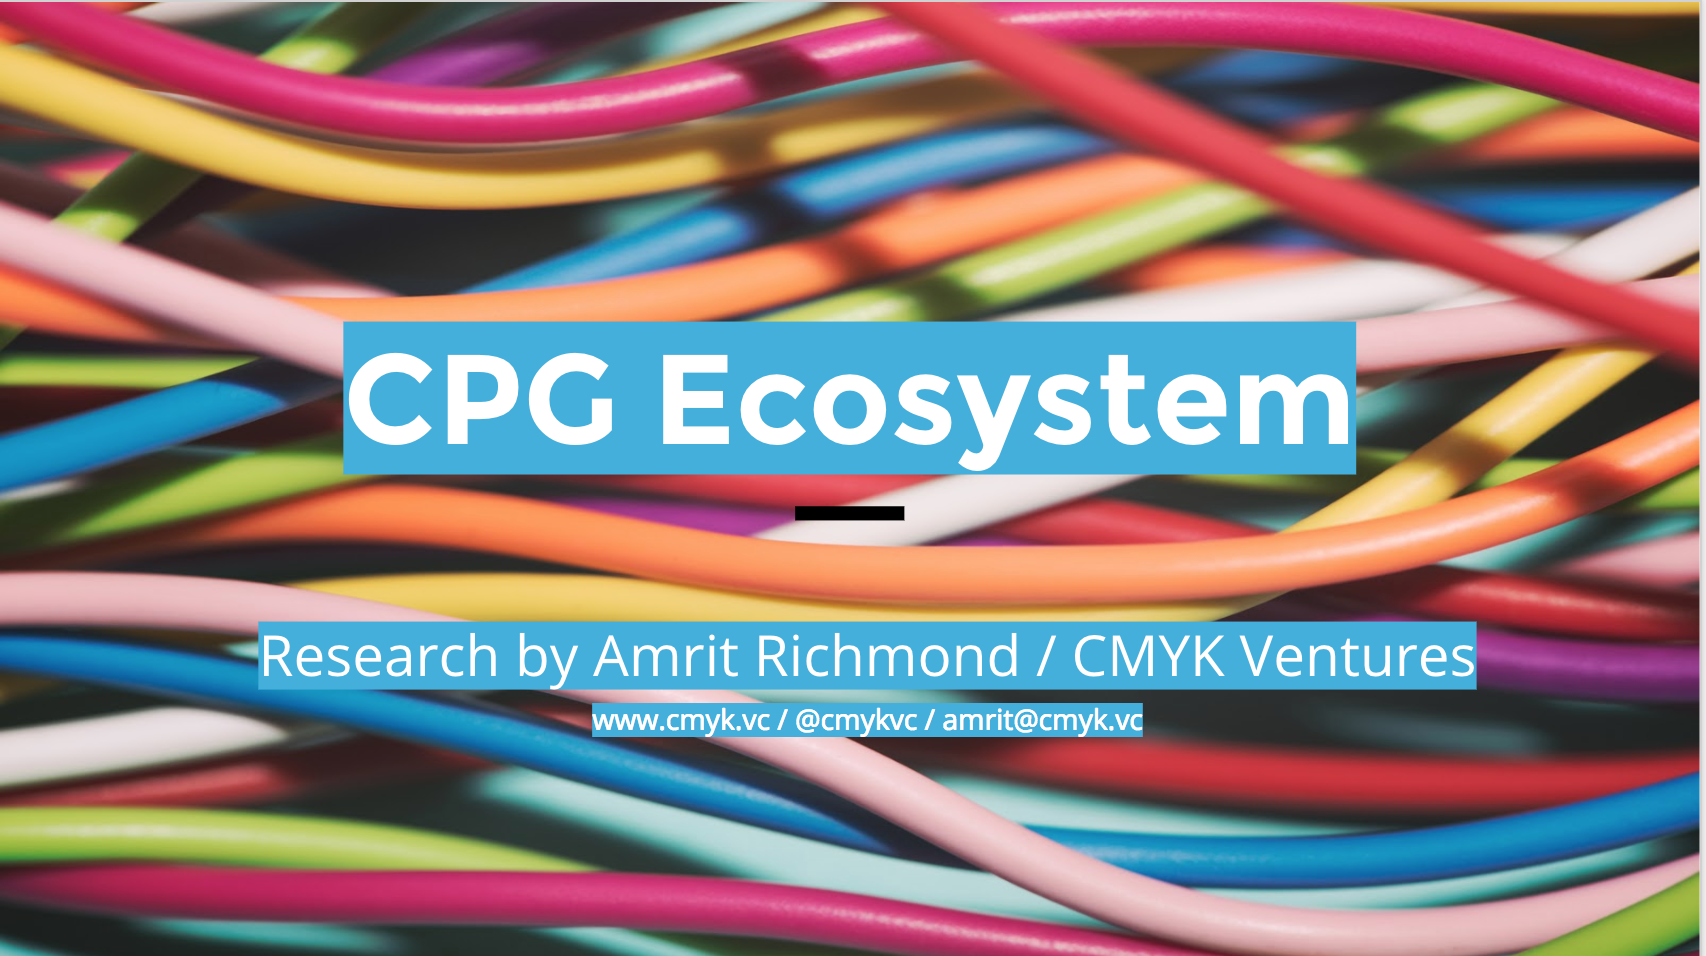 CPG Ecosystem Report - Our latest report includes 50+ pages of insights and analysis on emerging natural, organic, and direct-to-consumer CPGs, new consumer services, and related opportunities, challenges, distribution, investors, and trends.